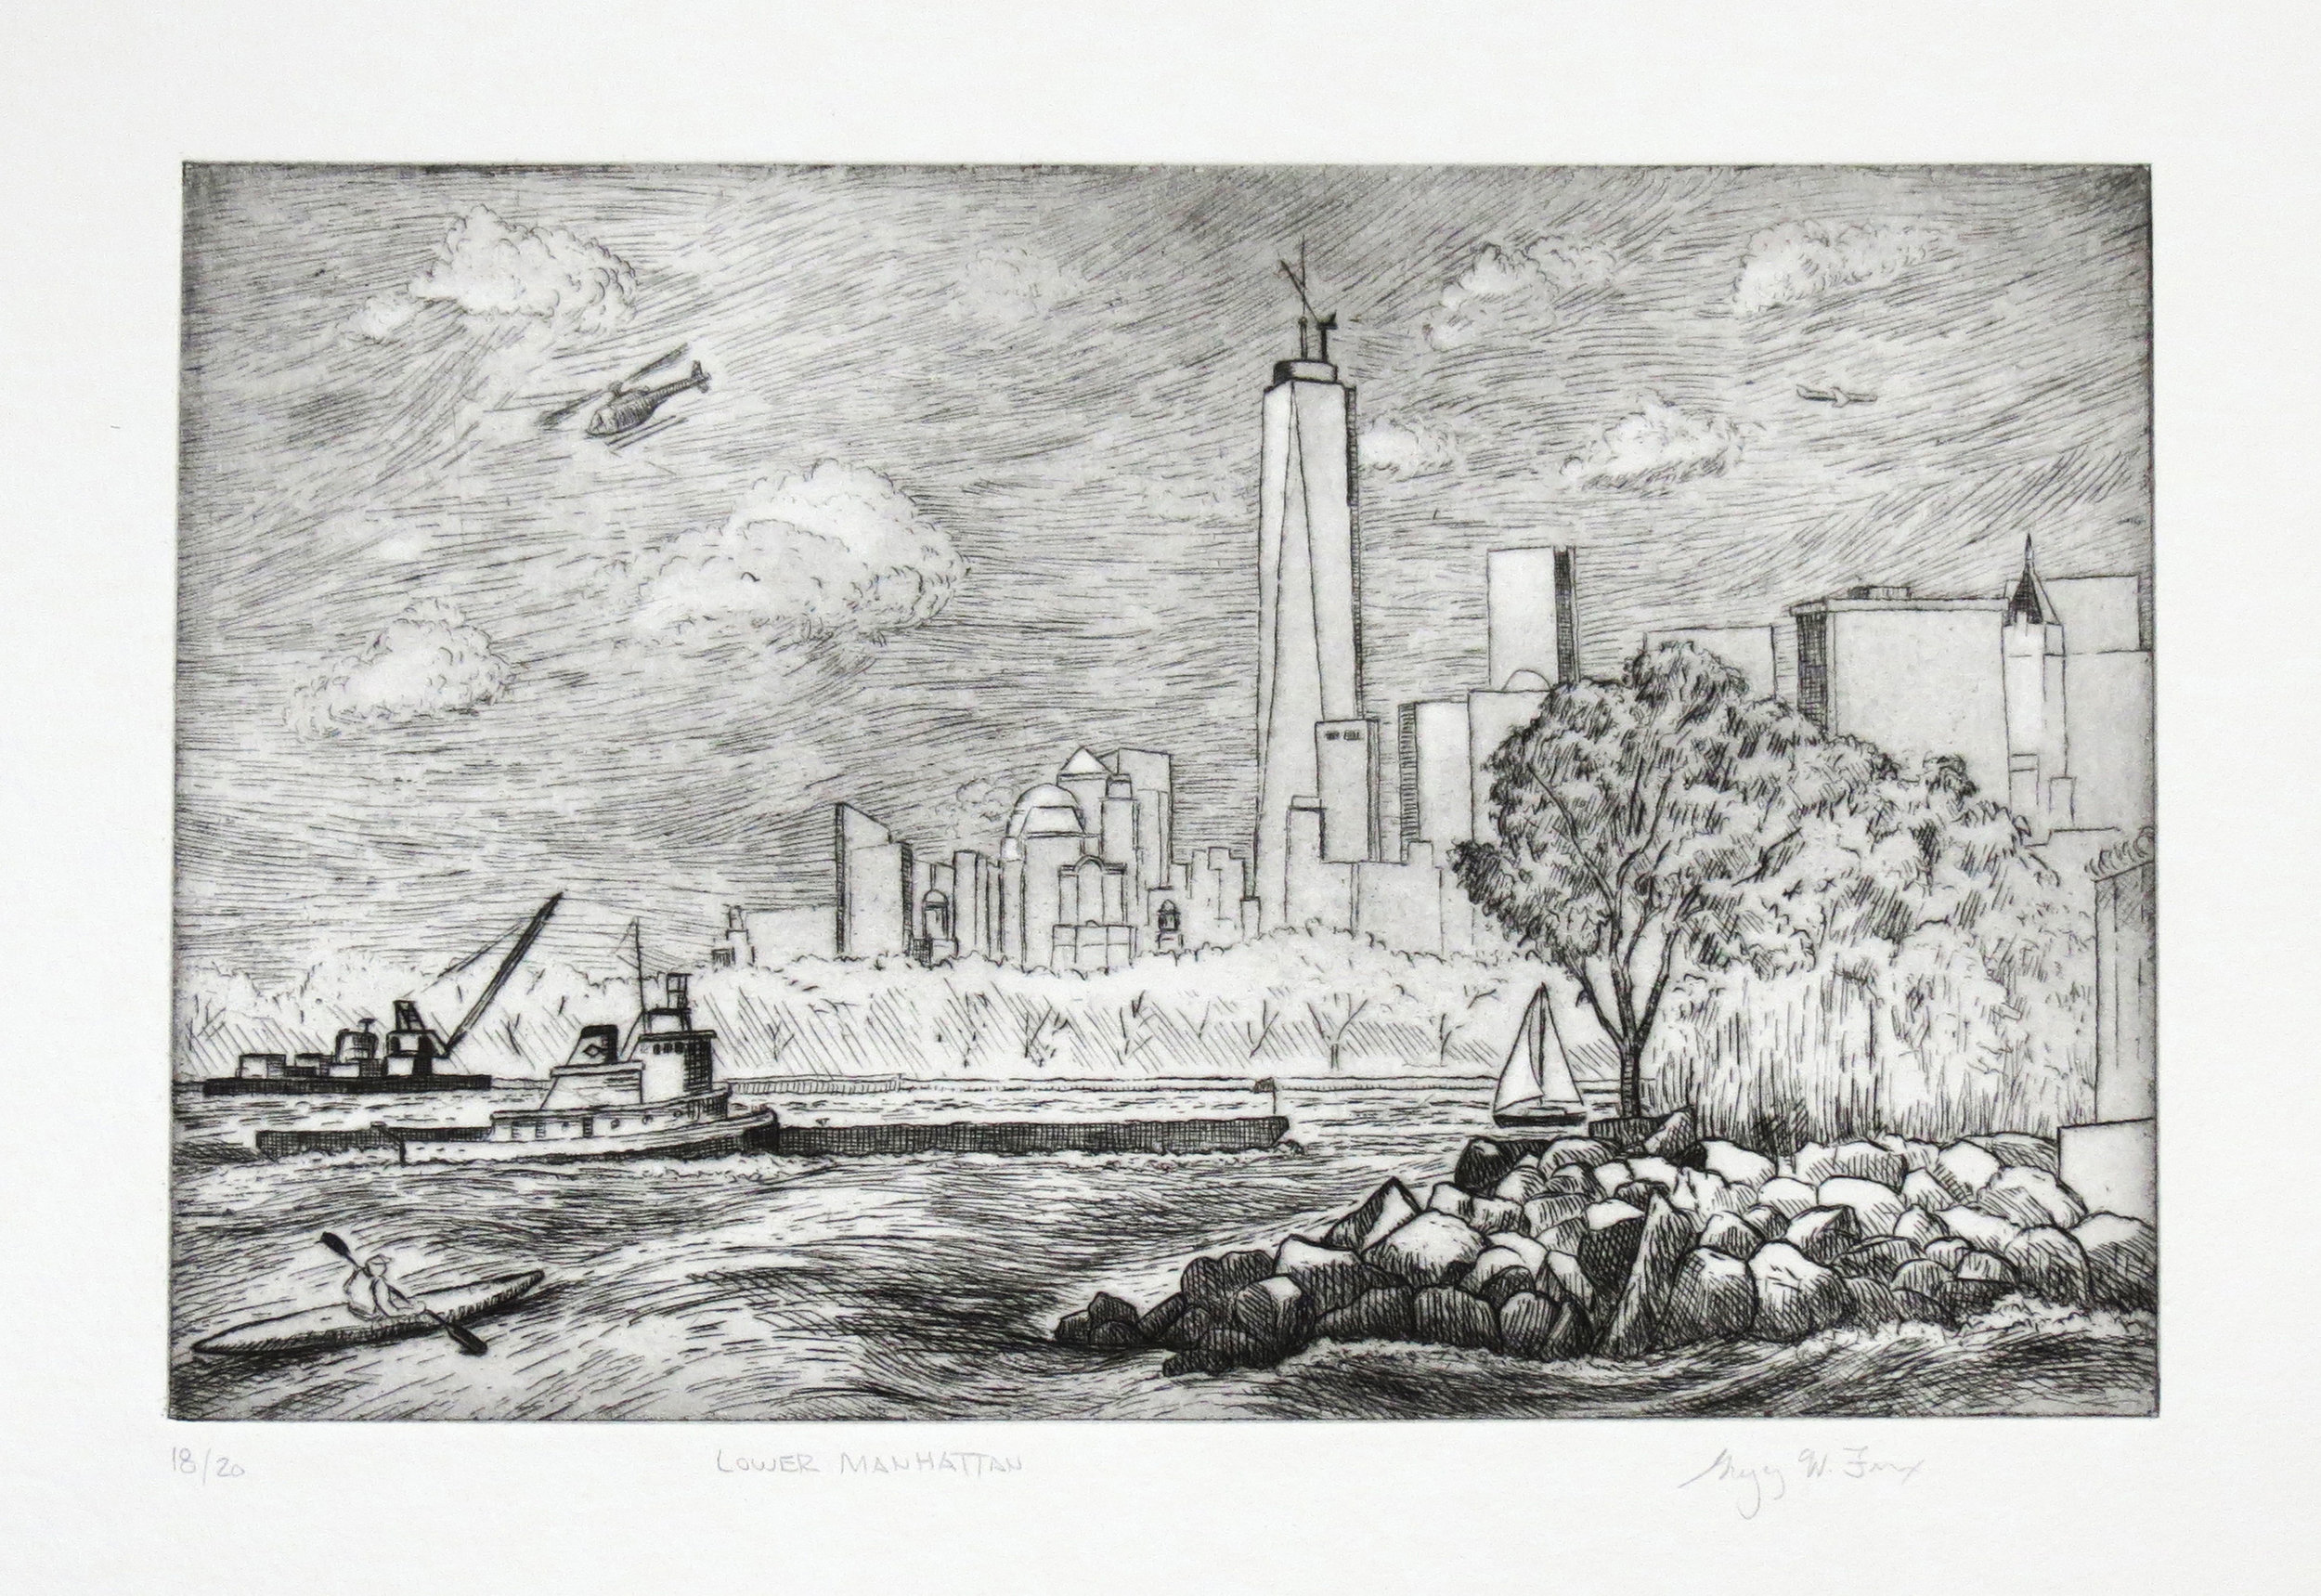 Lower Manhattan, etching